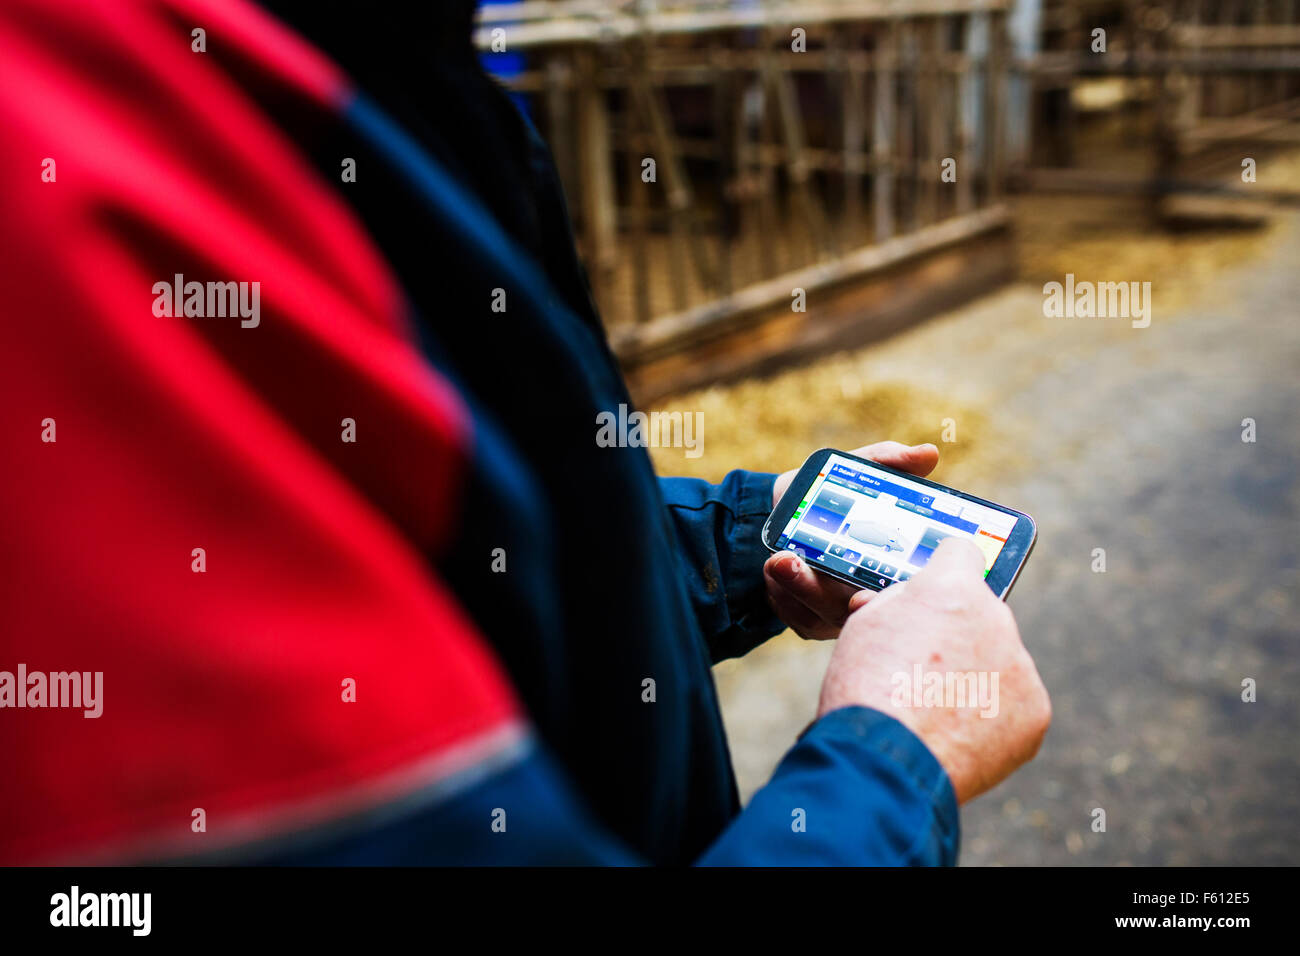 Human hand using smart phone at dairy farm - Stock Image